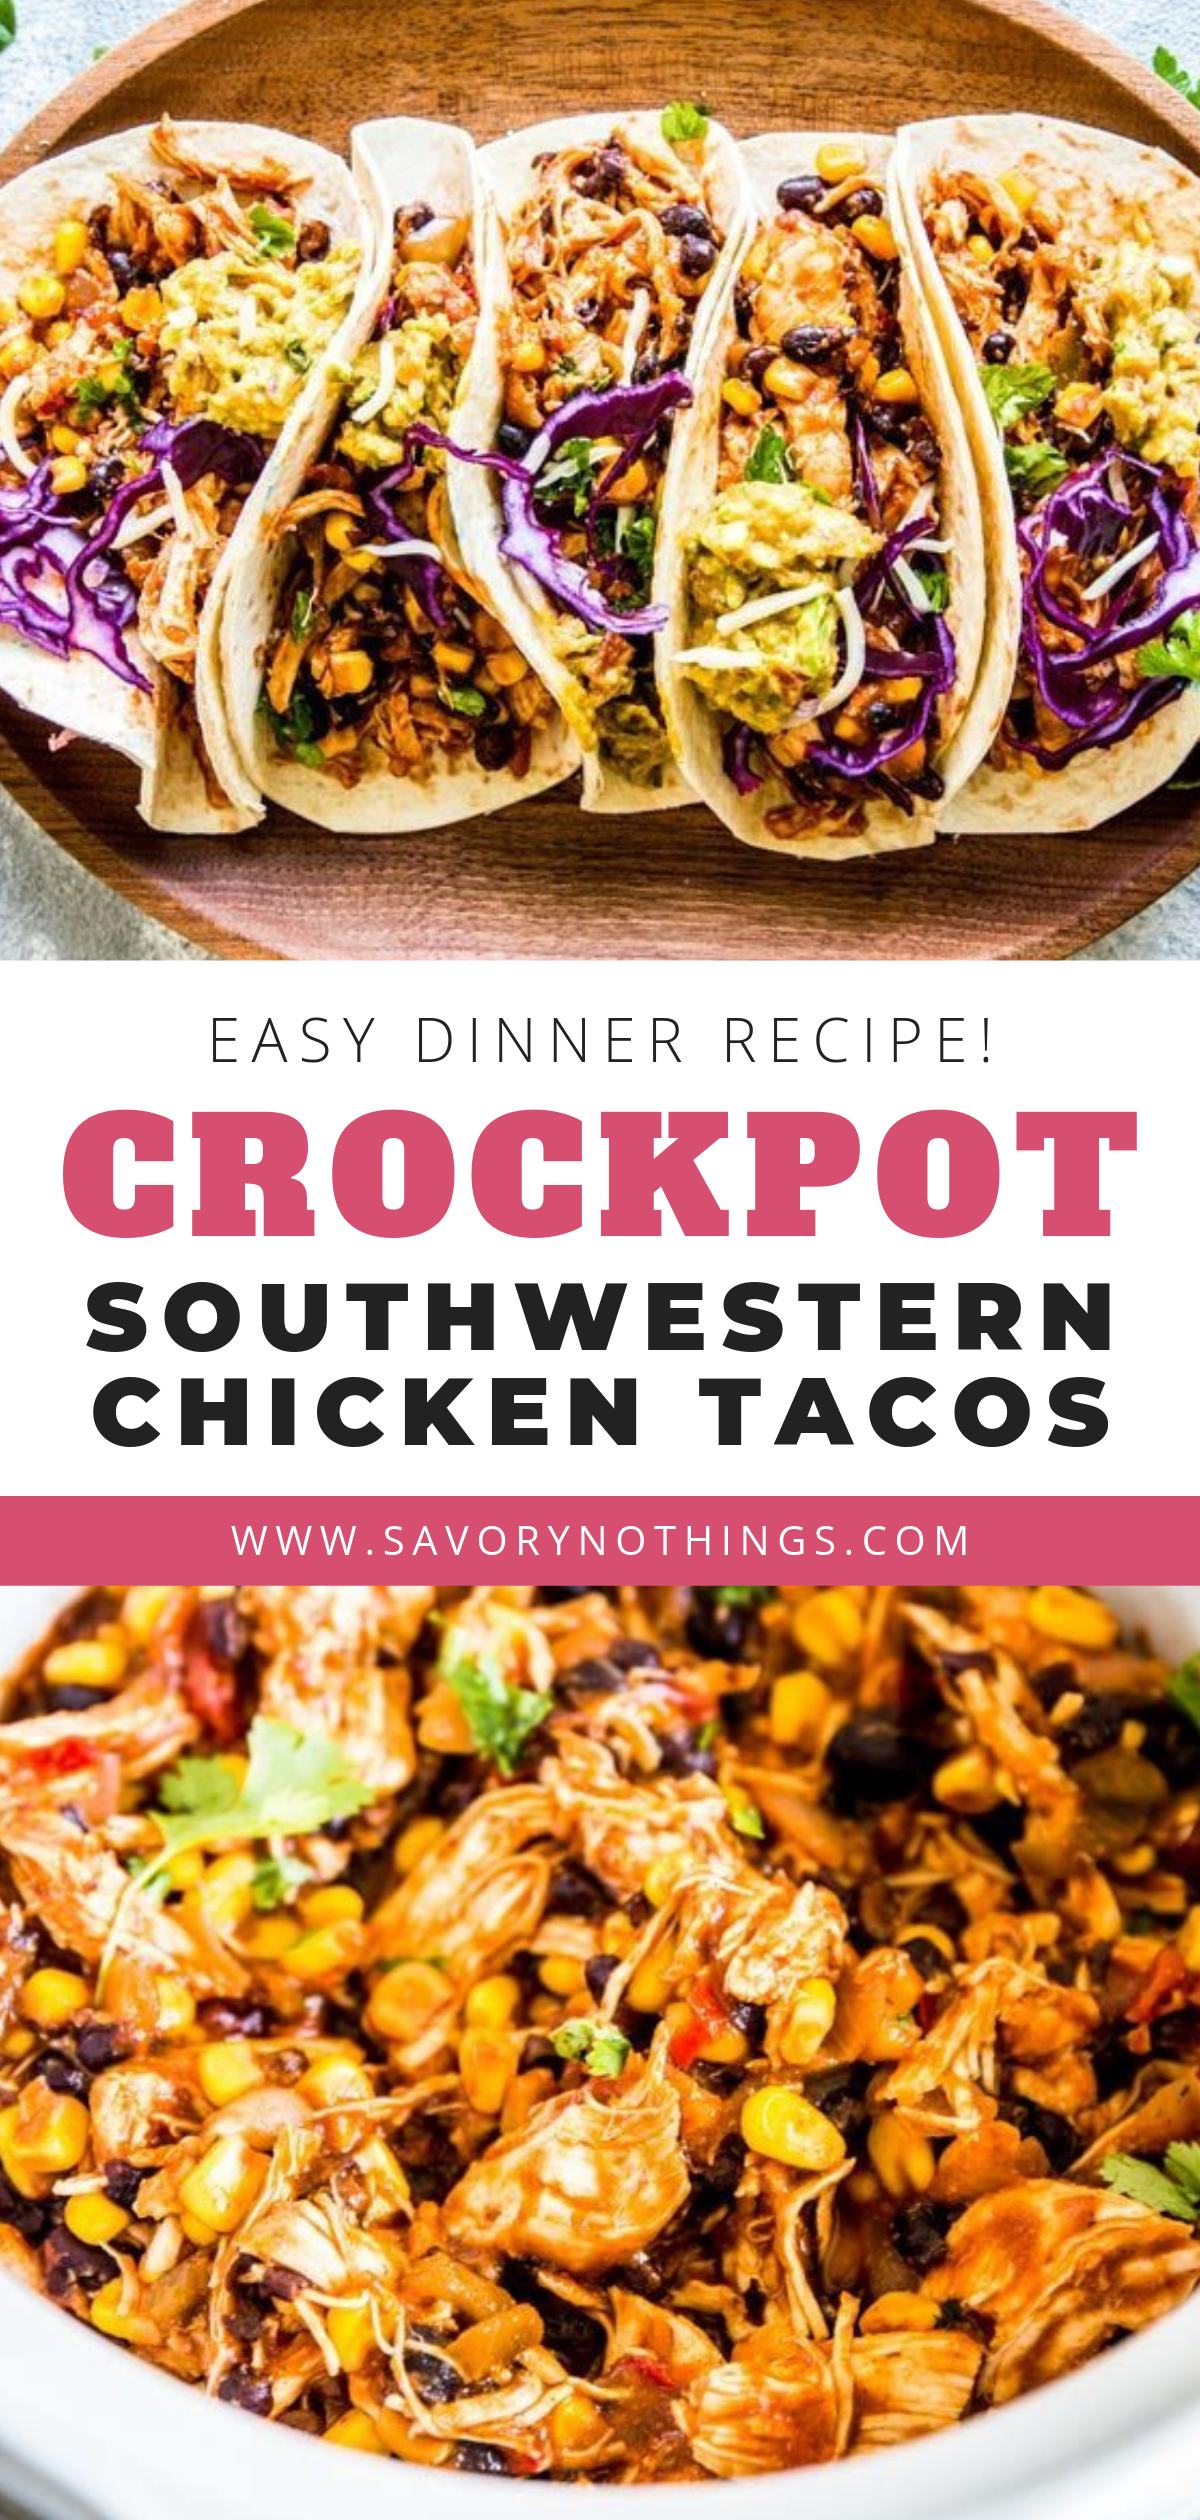 Southwestern Crockpot Chicken Tacos are so easy to make, you'll wonder why you haven't been making them all along! It will cook in your slow cooker all day long, then shred into tender Mexican chicken you can serve up with taco shells, guacamole and shredded cabbage. Put it on your meal plan this week! | #recipe #easyrecipes #dinner #easydinner #tacos #chicken #chickenrecipes #crockpot #crockpotrecipes #slowcooker #slowcookerrecipes #kidfriendly #healthyfood #healthyrecipes #mexicanchickentacos